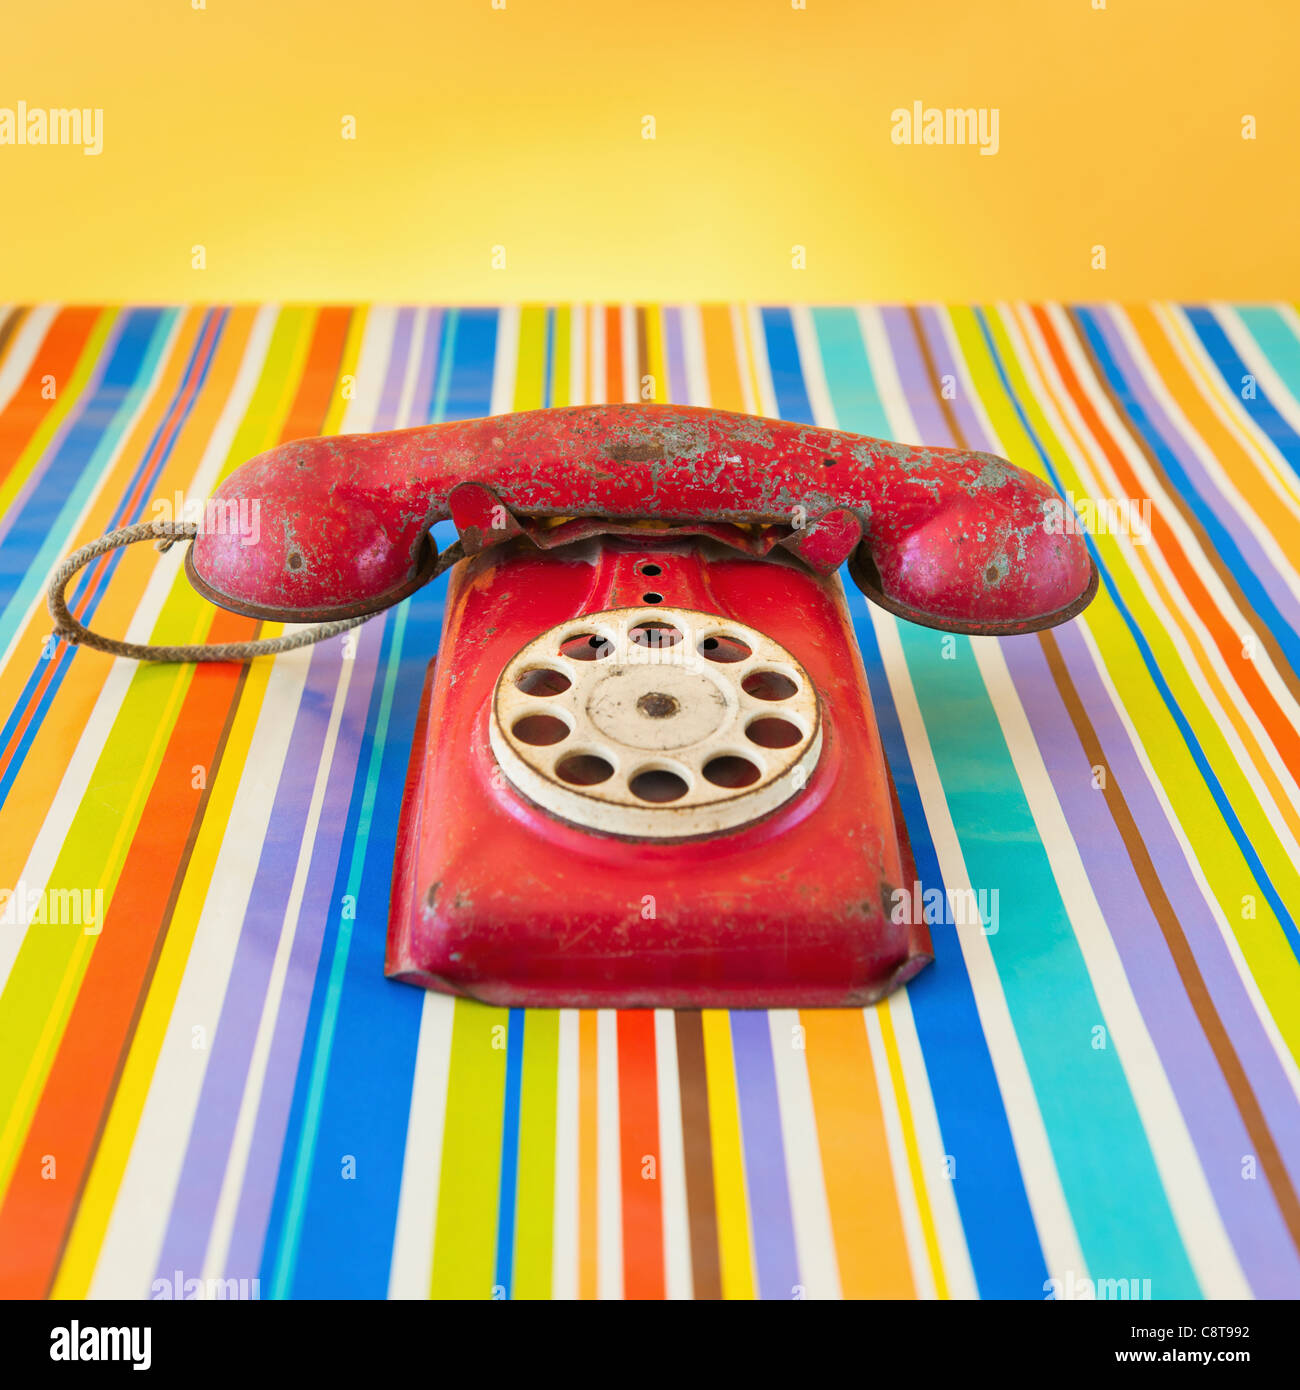 Studio shot of rotary phone on striped background - Stock Image